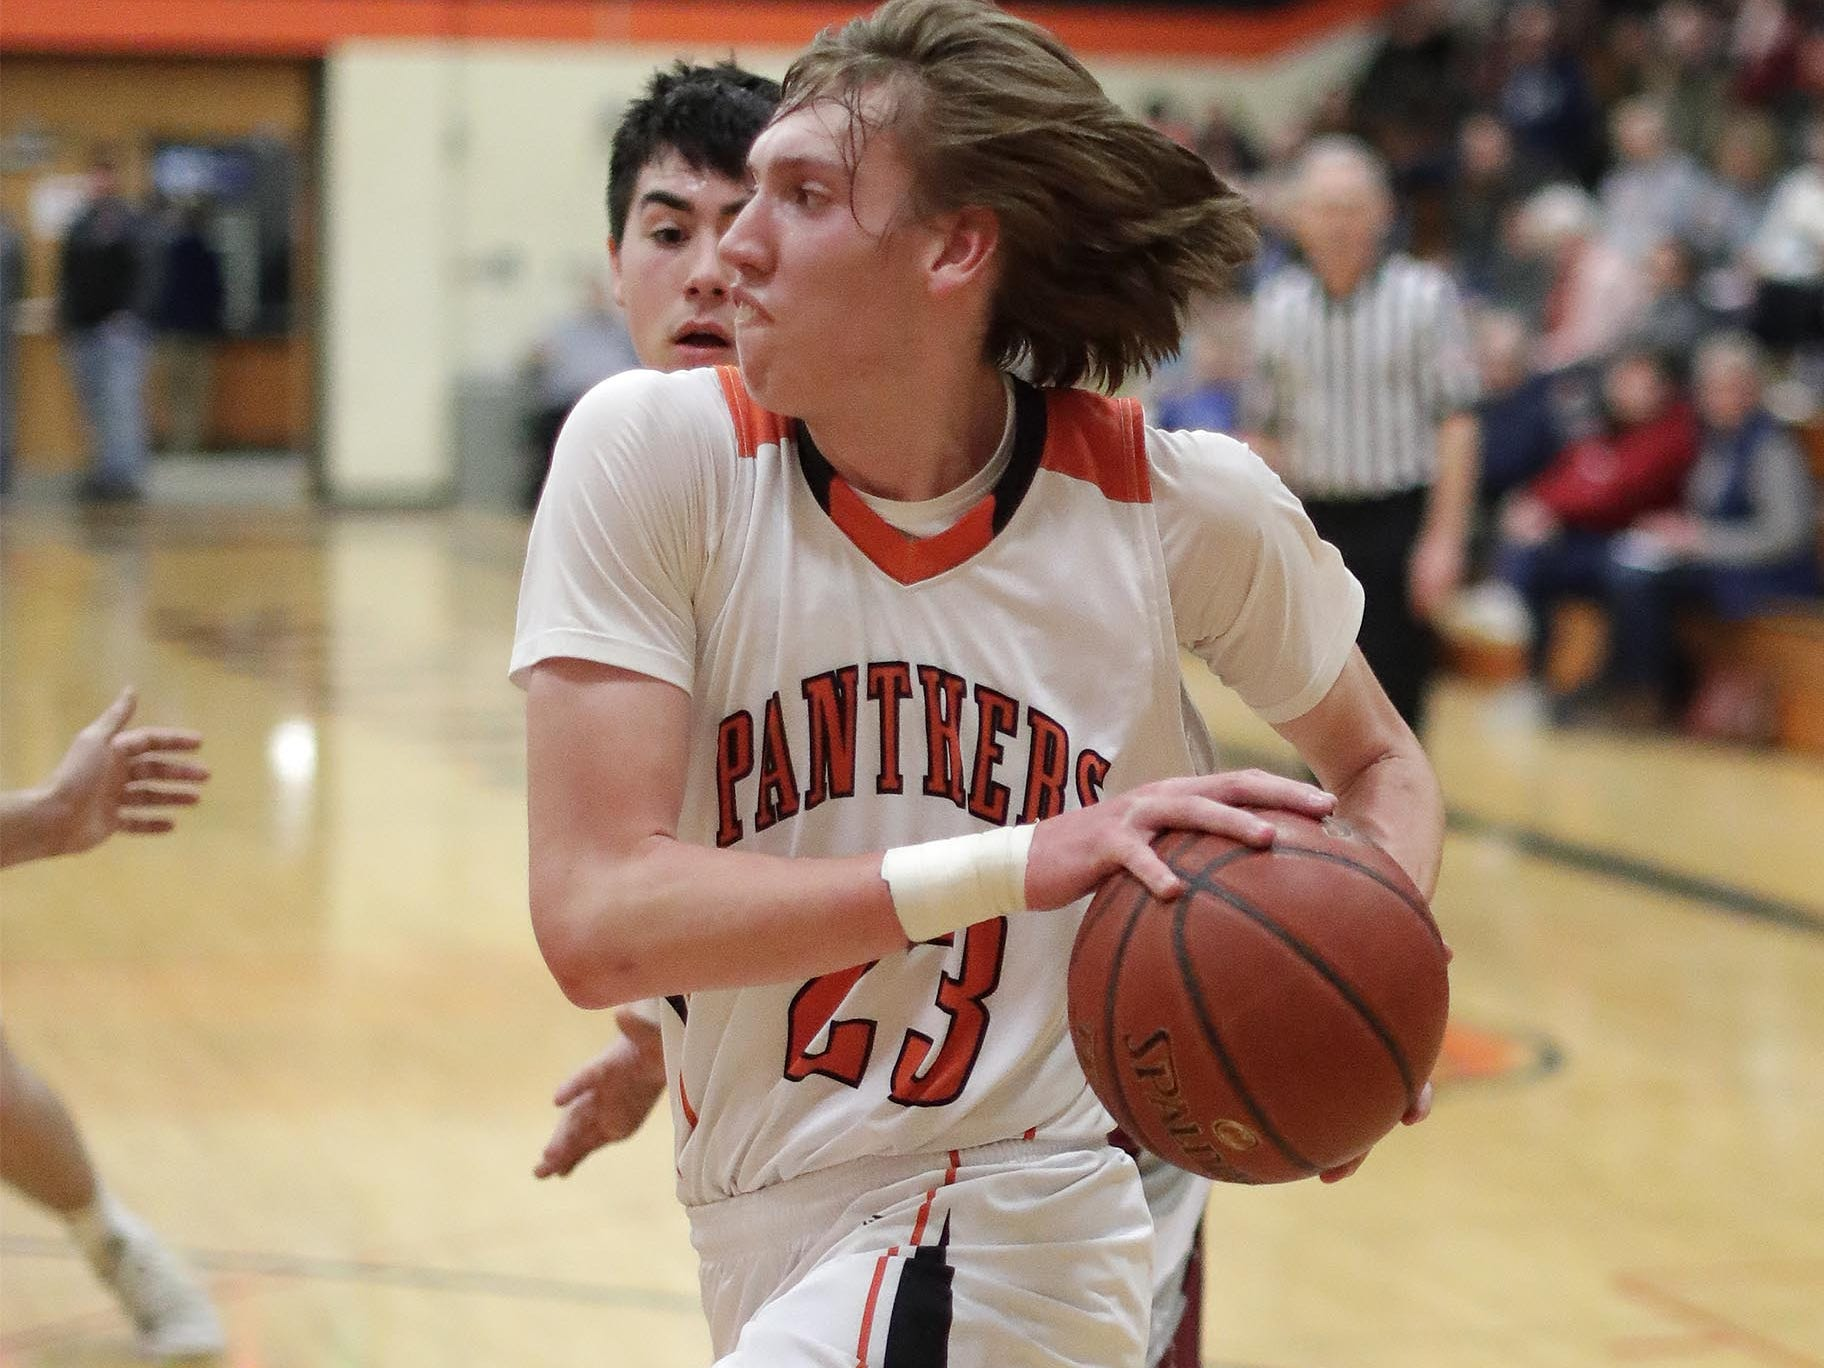 Plymouth's Zach Zeeveld (23) drives the ball against Winneconne, Wednesday, February 21, 2019, in Plymouth, Wis.